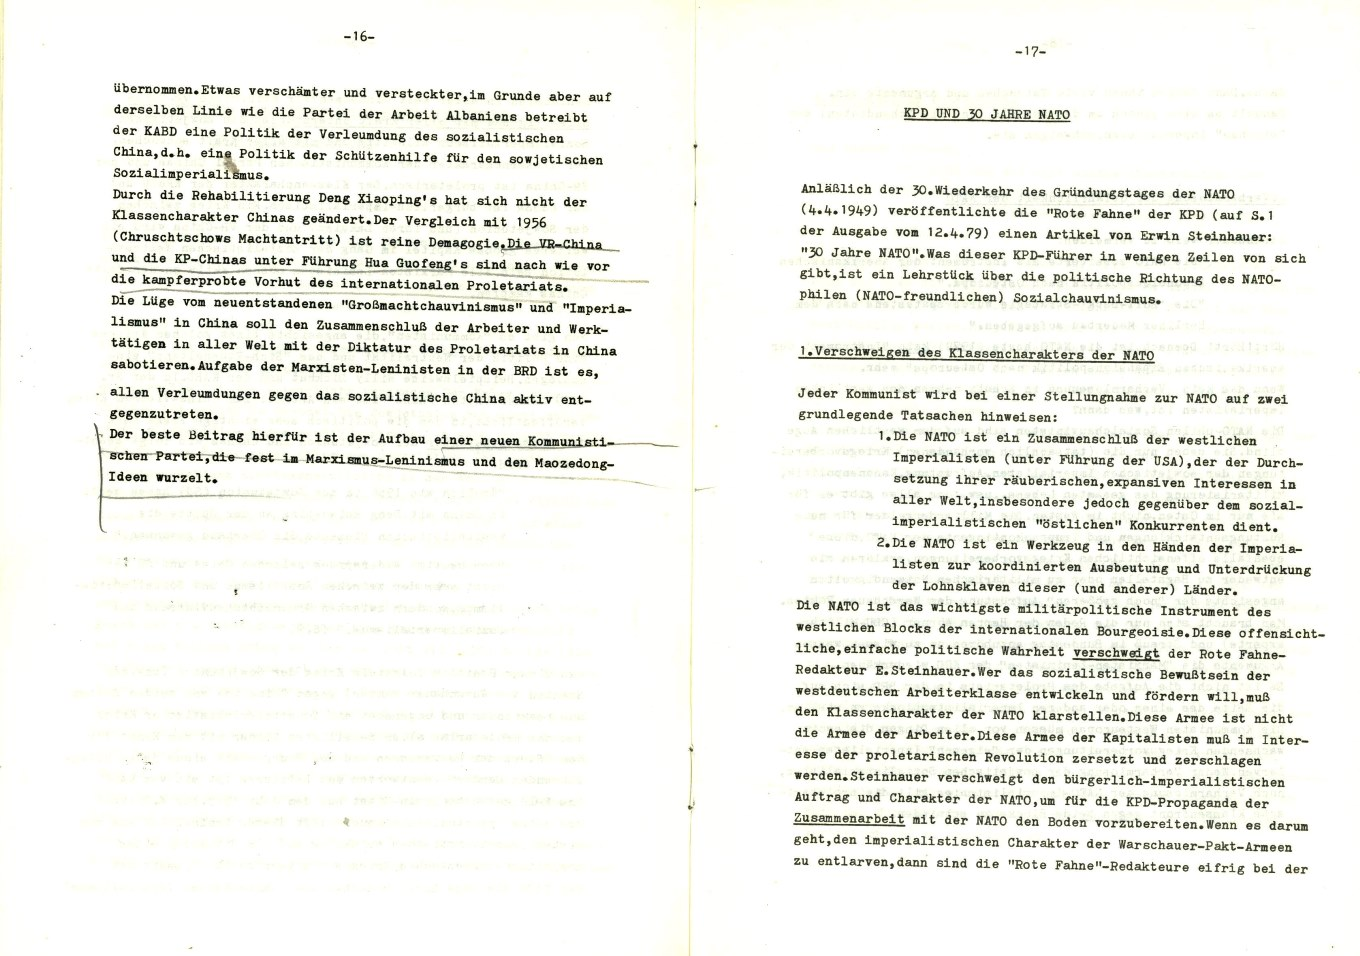 Muenchen_Kampf_dem_Revisionismus_1979_10_09